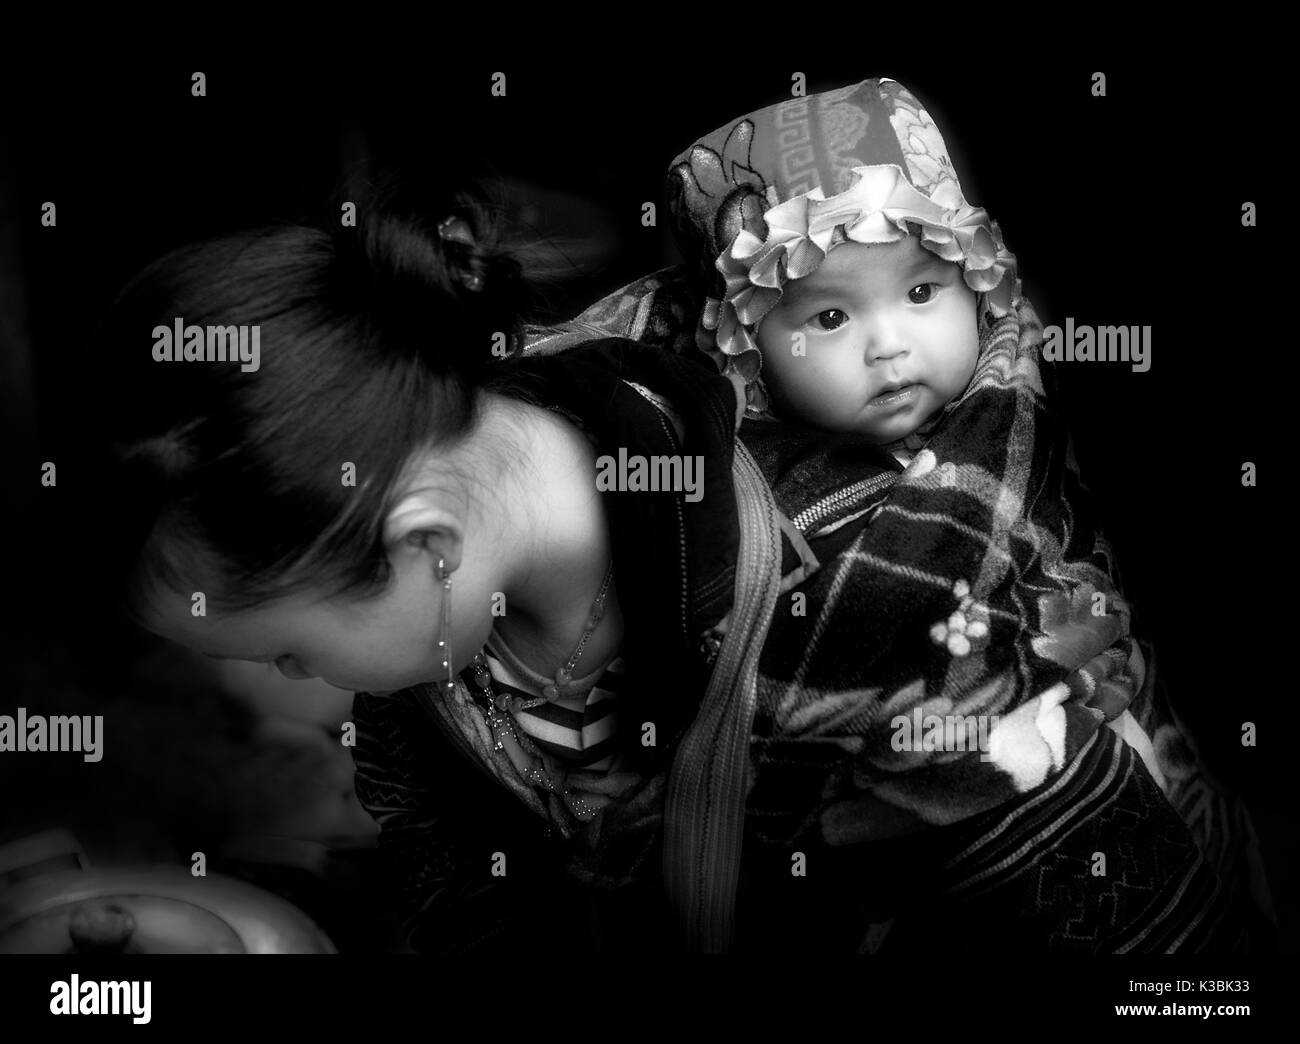 mother and child Vietnam - Stock Image